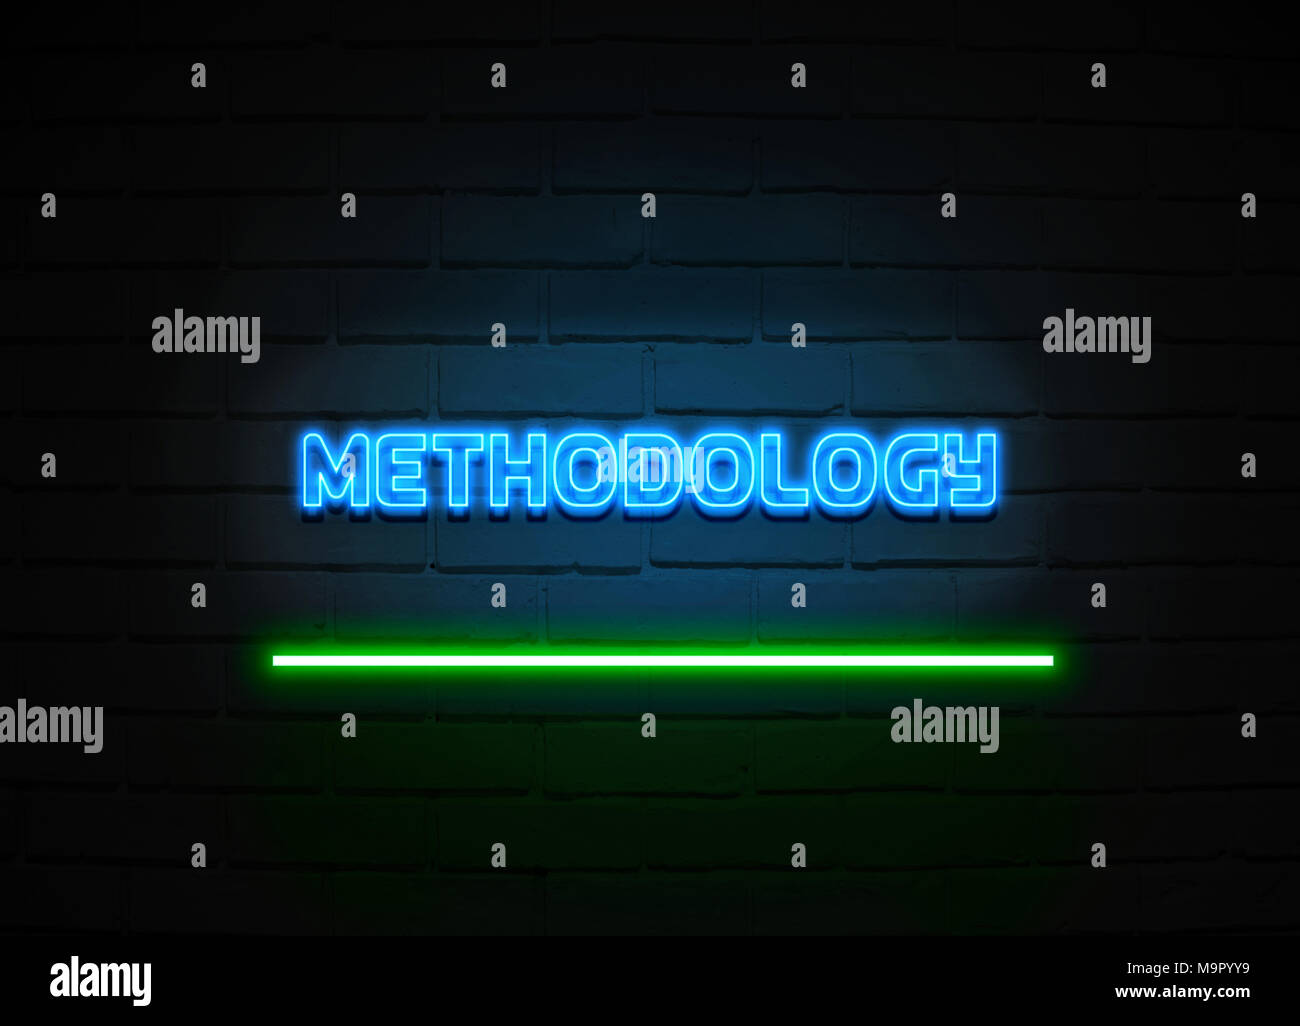 Methodology neon sign - Glowing Neon Sign on brickwall wall - 3D rendered royalty free stock illustration. - Stock Image